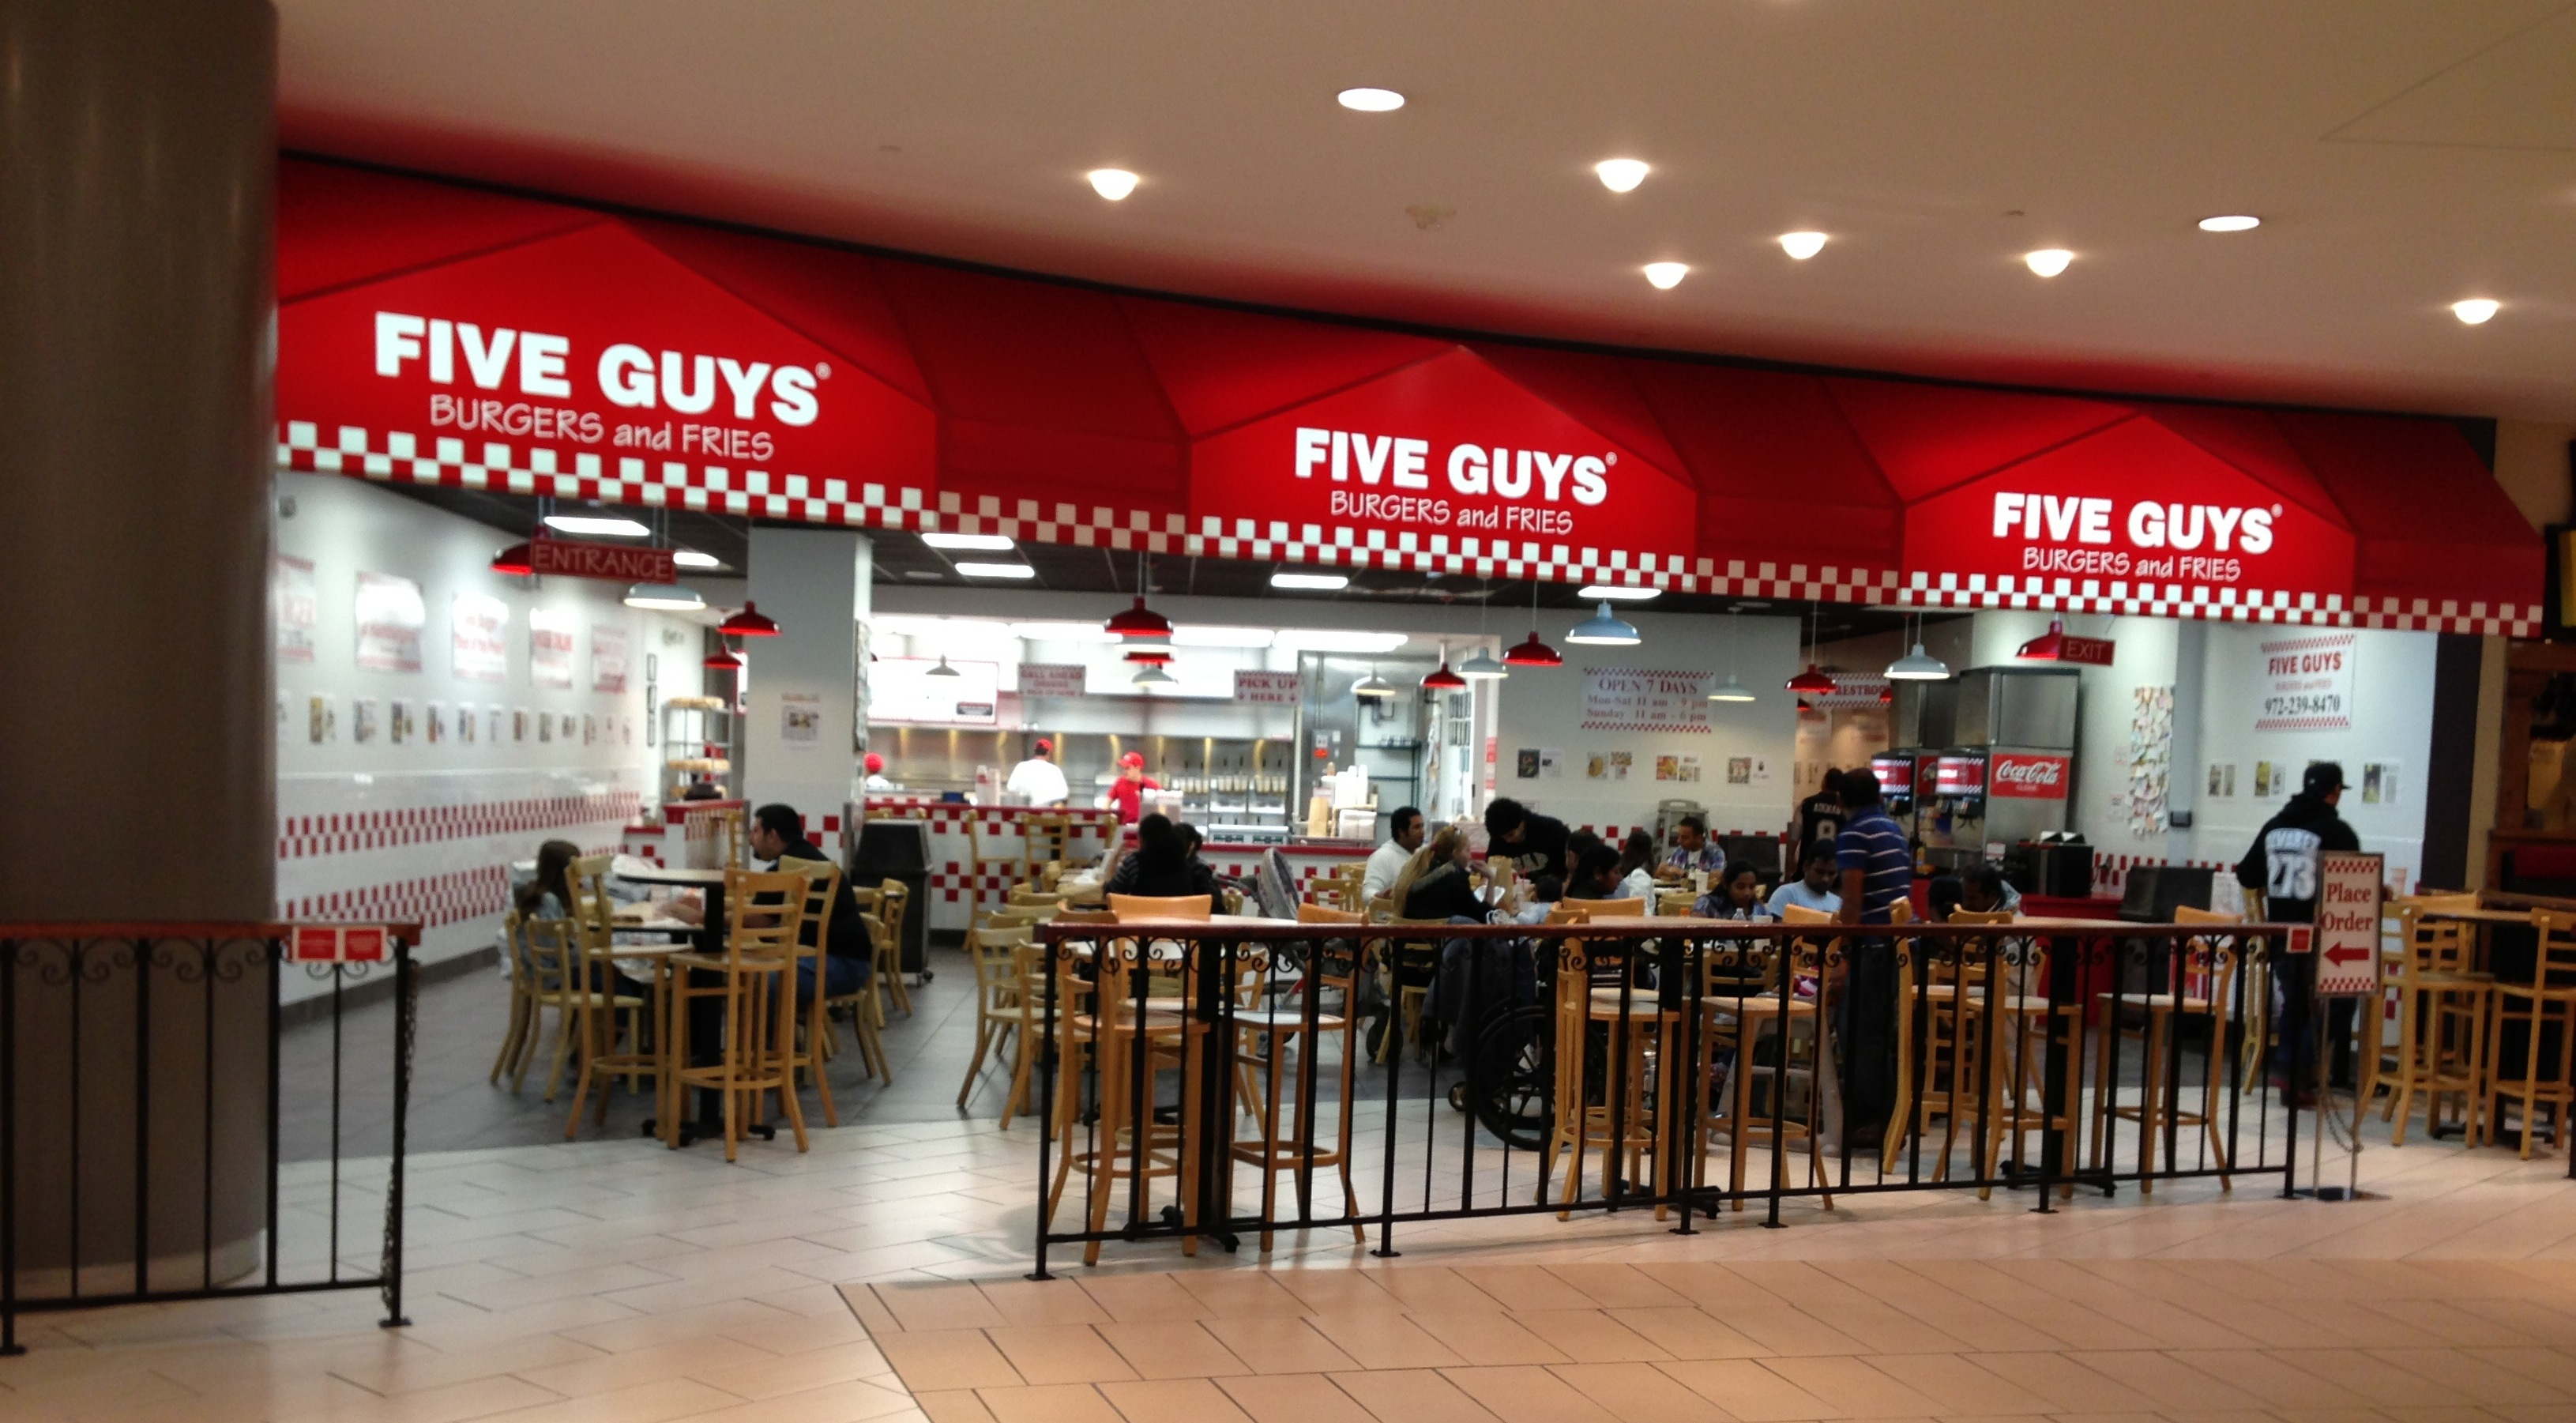 www.fiveguys.com/survey